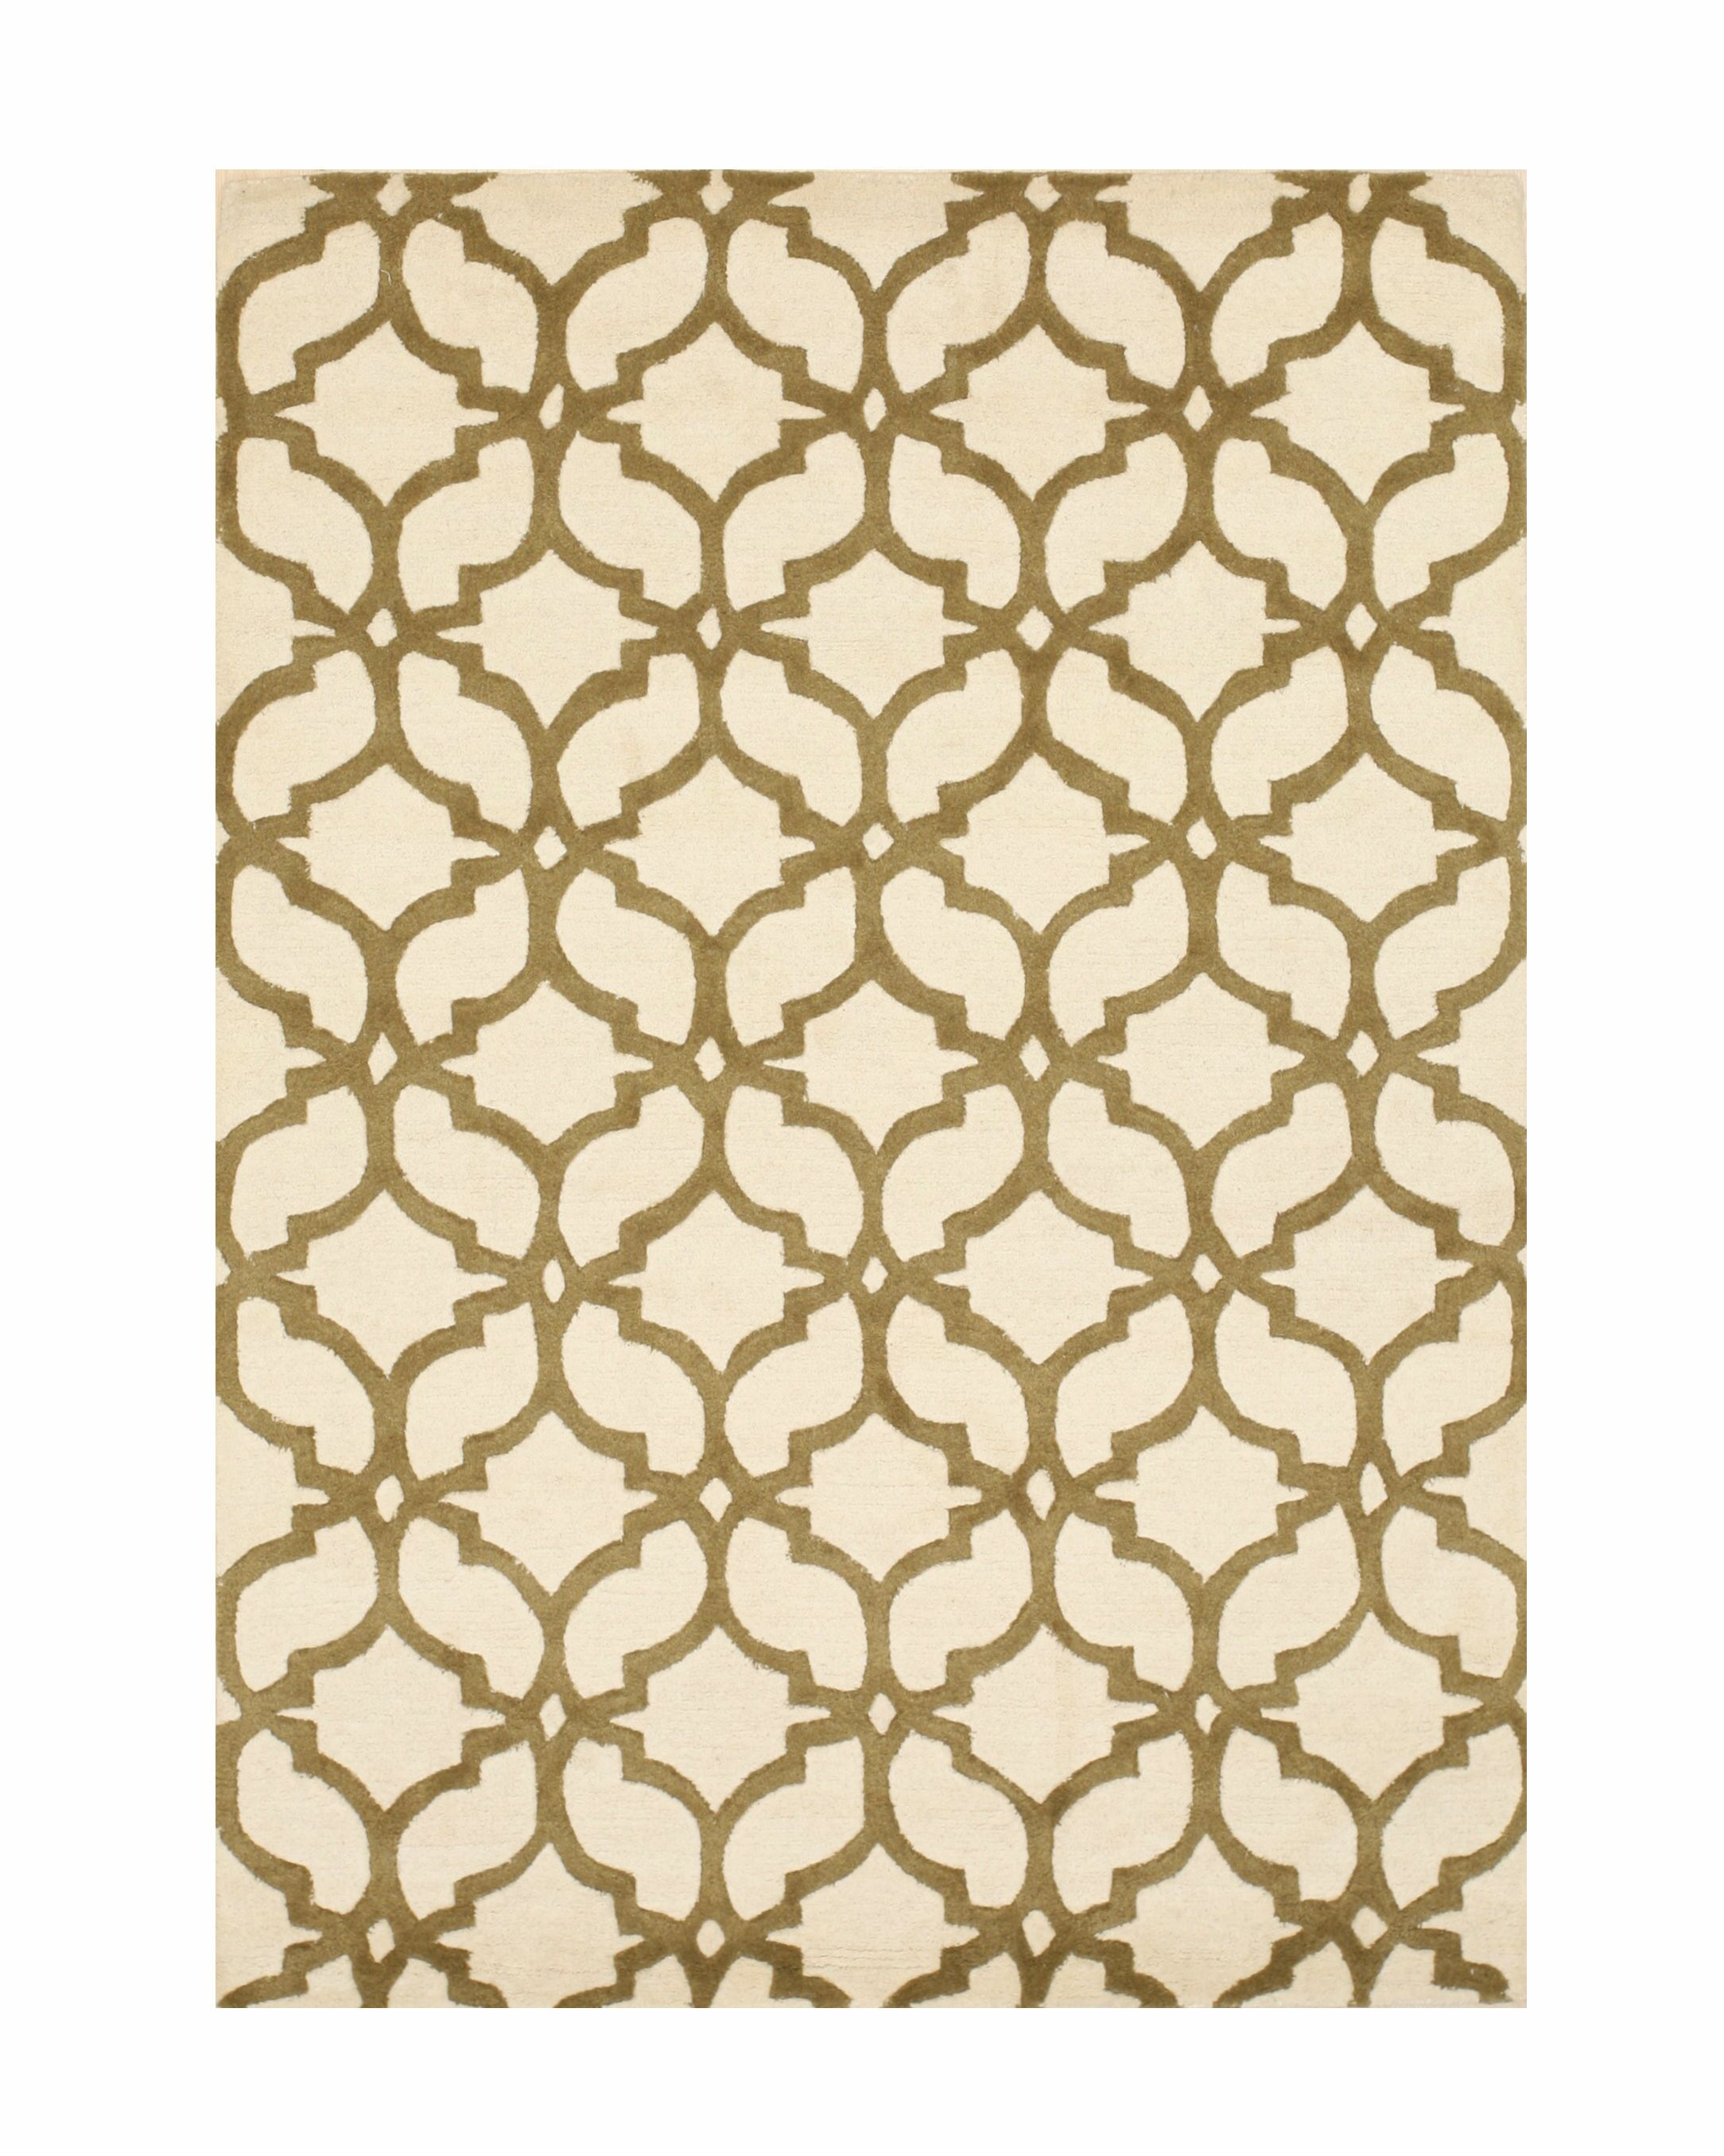 Innes Traditional Hand-Tufted Wool Ivory/Brown Area Rug Rug Size: Rectangle 7'6